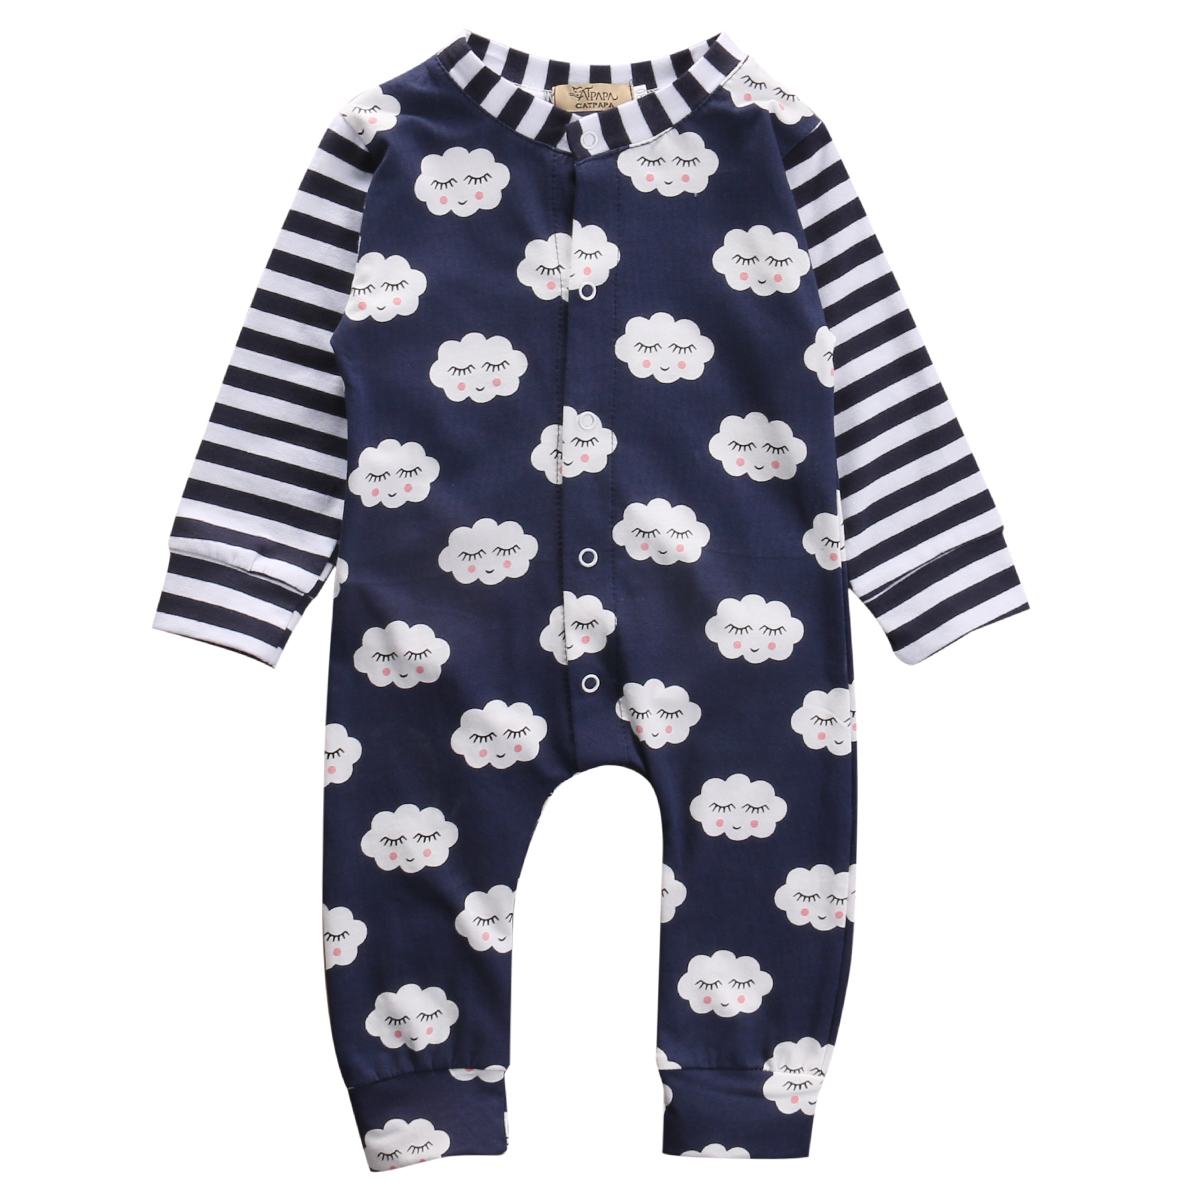 Baby Romper 2016 Autumn Winter Fleece Long Sleeve Baby Boy Girl Clothes One Piece Jumpsuit Underwear Baby Clothing